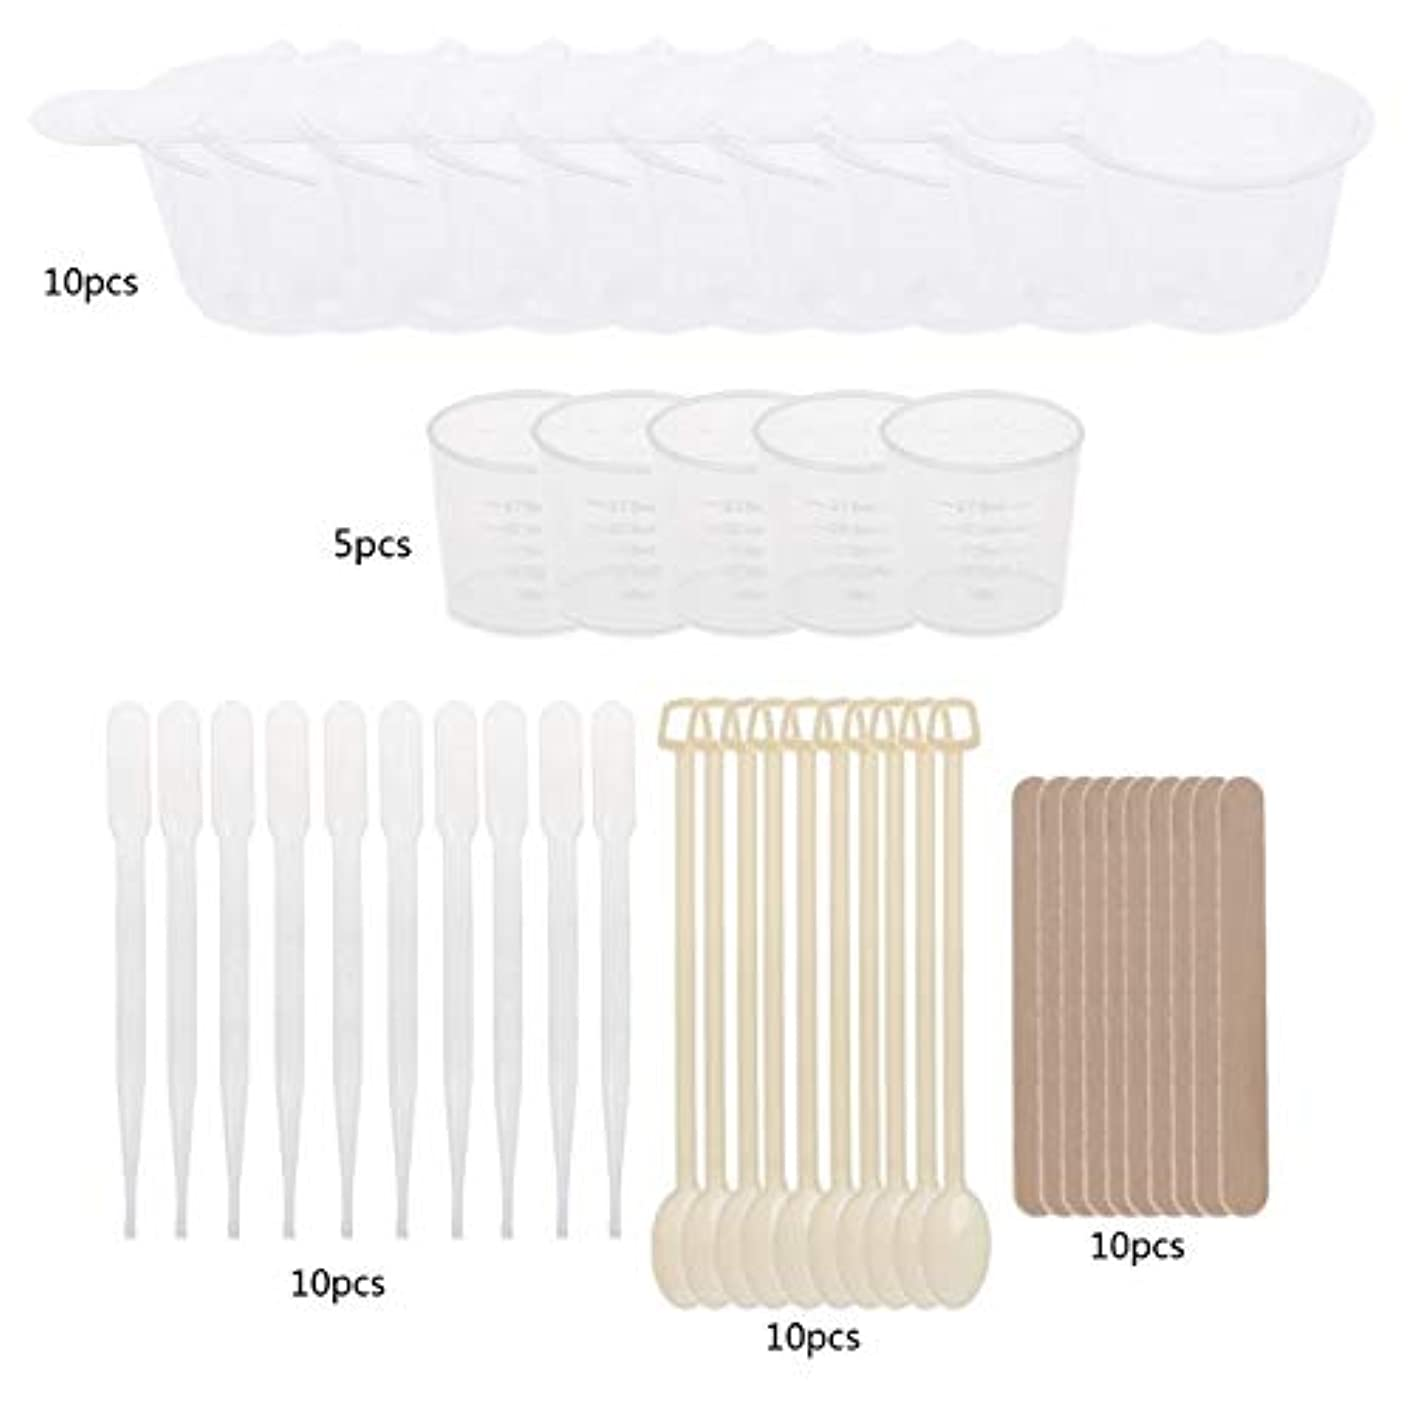 EPOXY Resin MOLDS Jewelry Making Casting Tool KIT with STIRRERS Spoons DROPPERS Measuring Cups and CONTAINERS